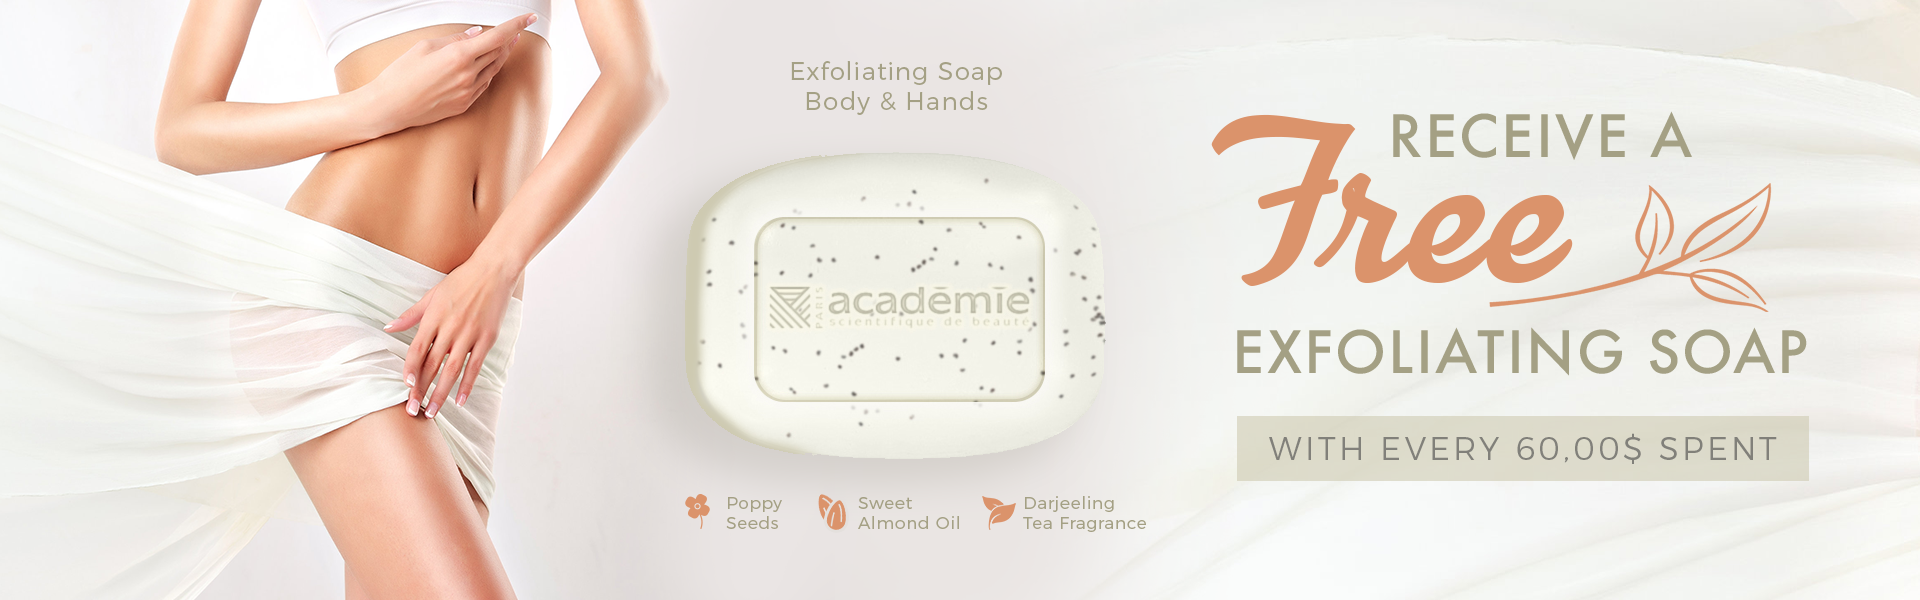 Free Exfoliating Soap with every 60,00$ spent!